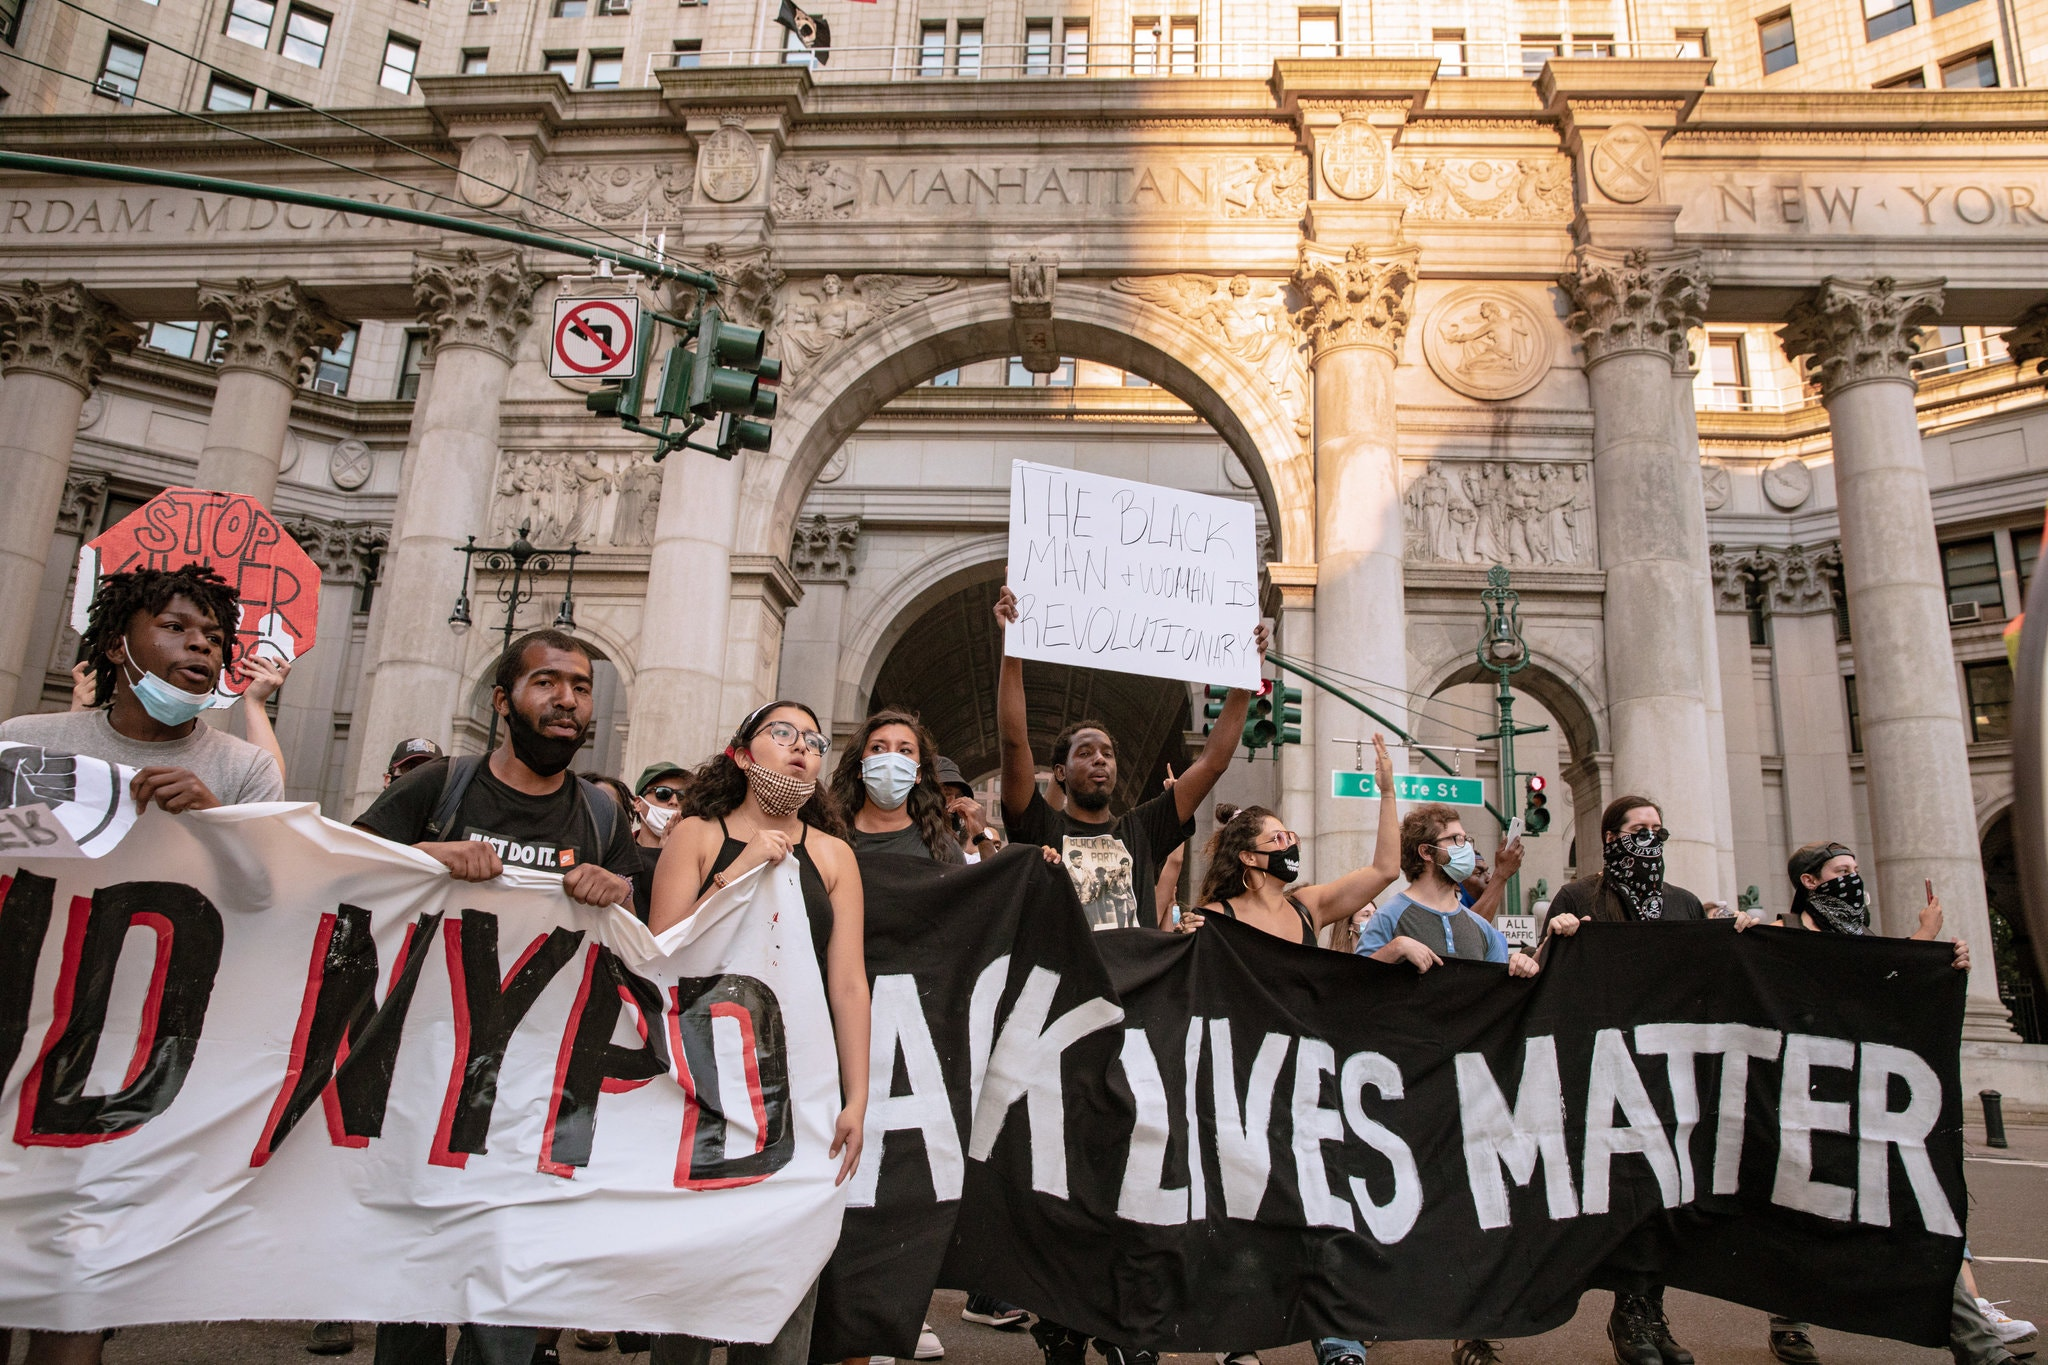 Occupy City Hall, Occupy Wall Street, Black Lives Matter, defund the police, George Floyd, NYPD, police abuse, police brutality, racial justice